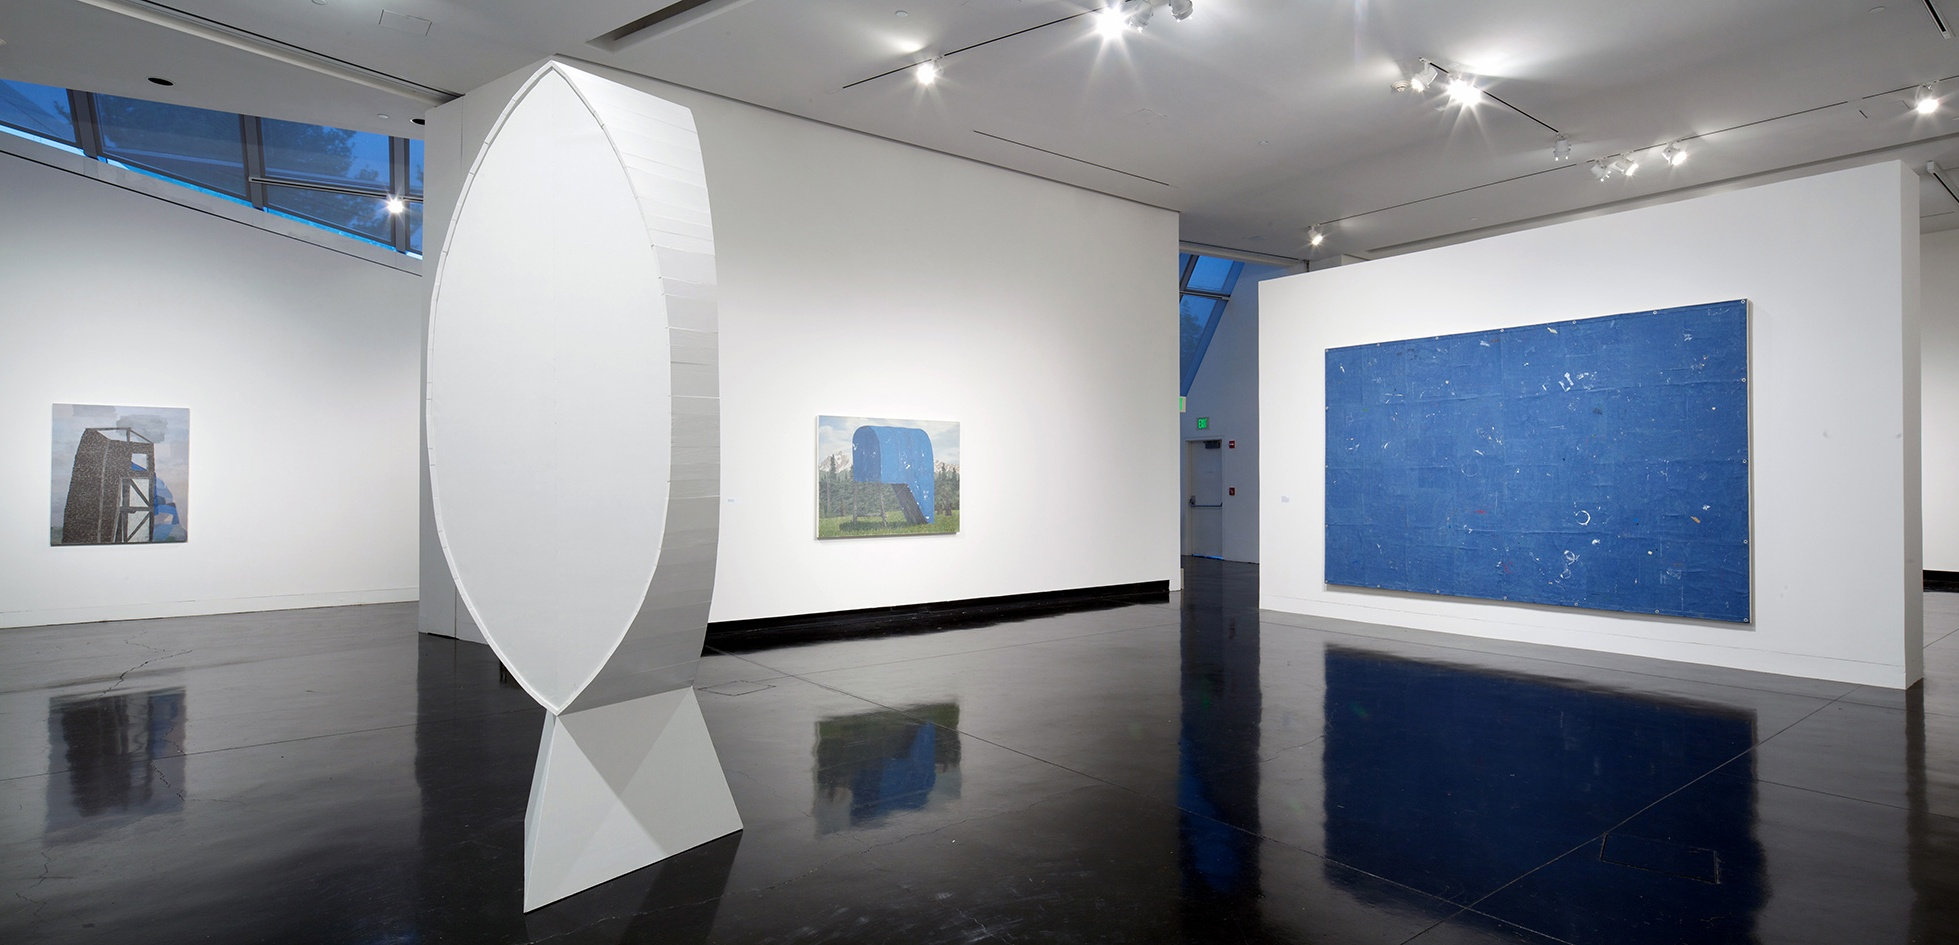 A white, oval sculpture stands in a gallery surrounded by white walls with abstract, landscape paintings on them.